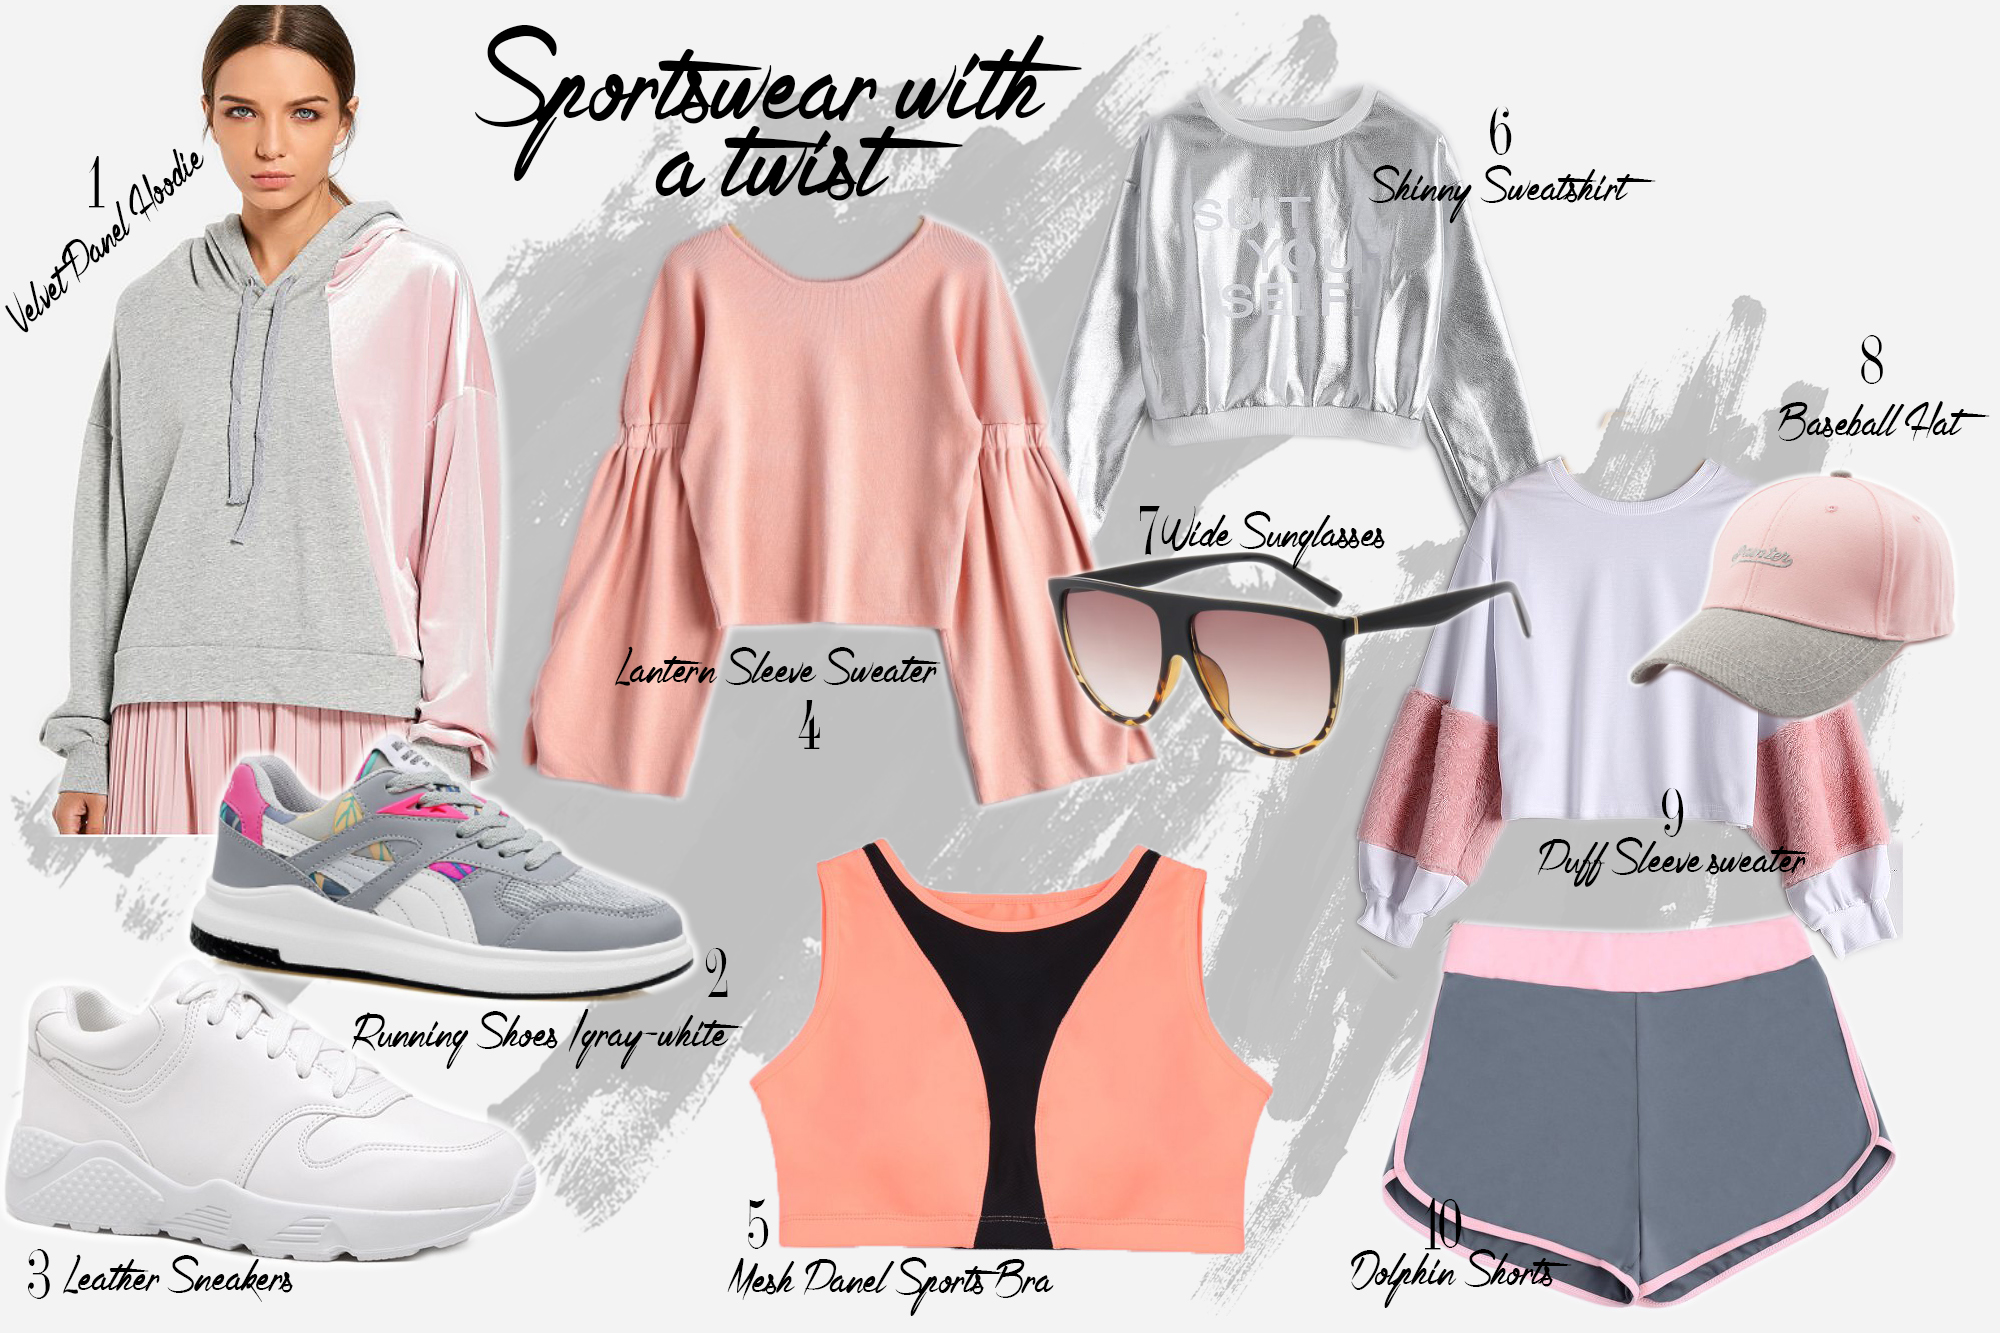 Sport chic outfit ideas for fall